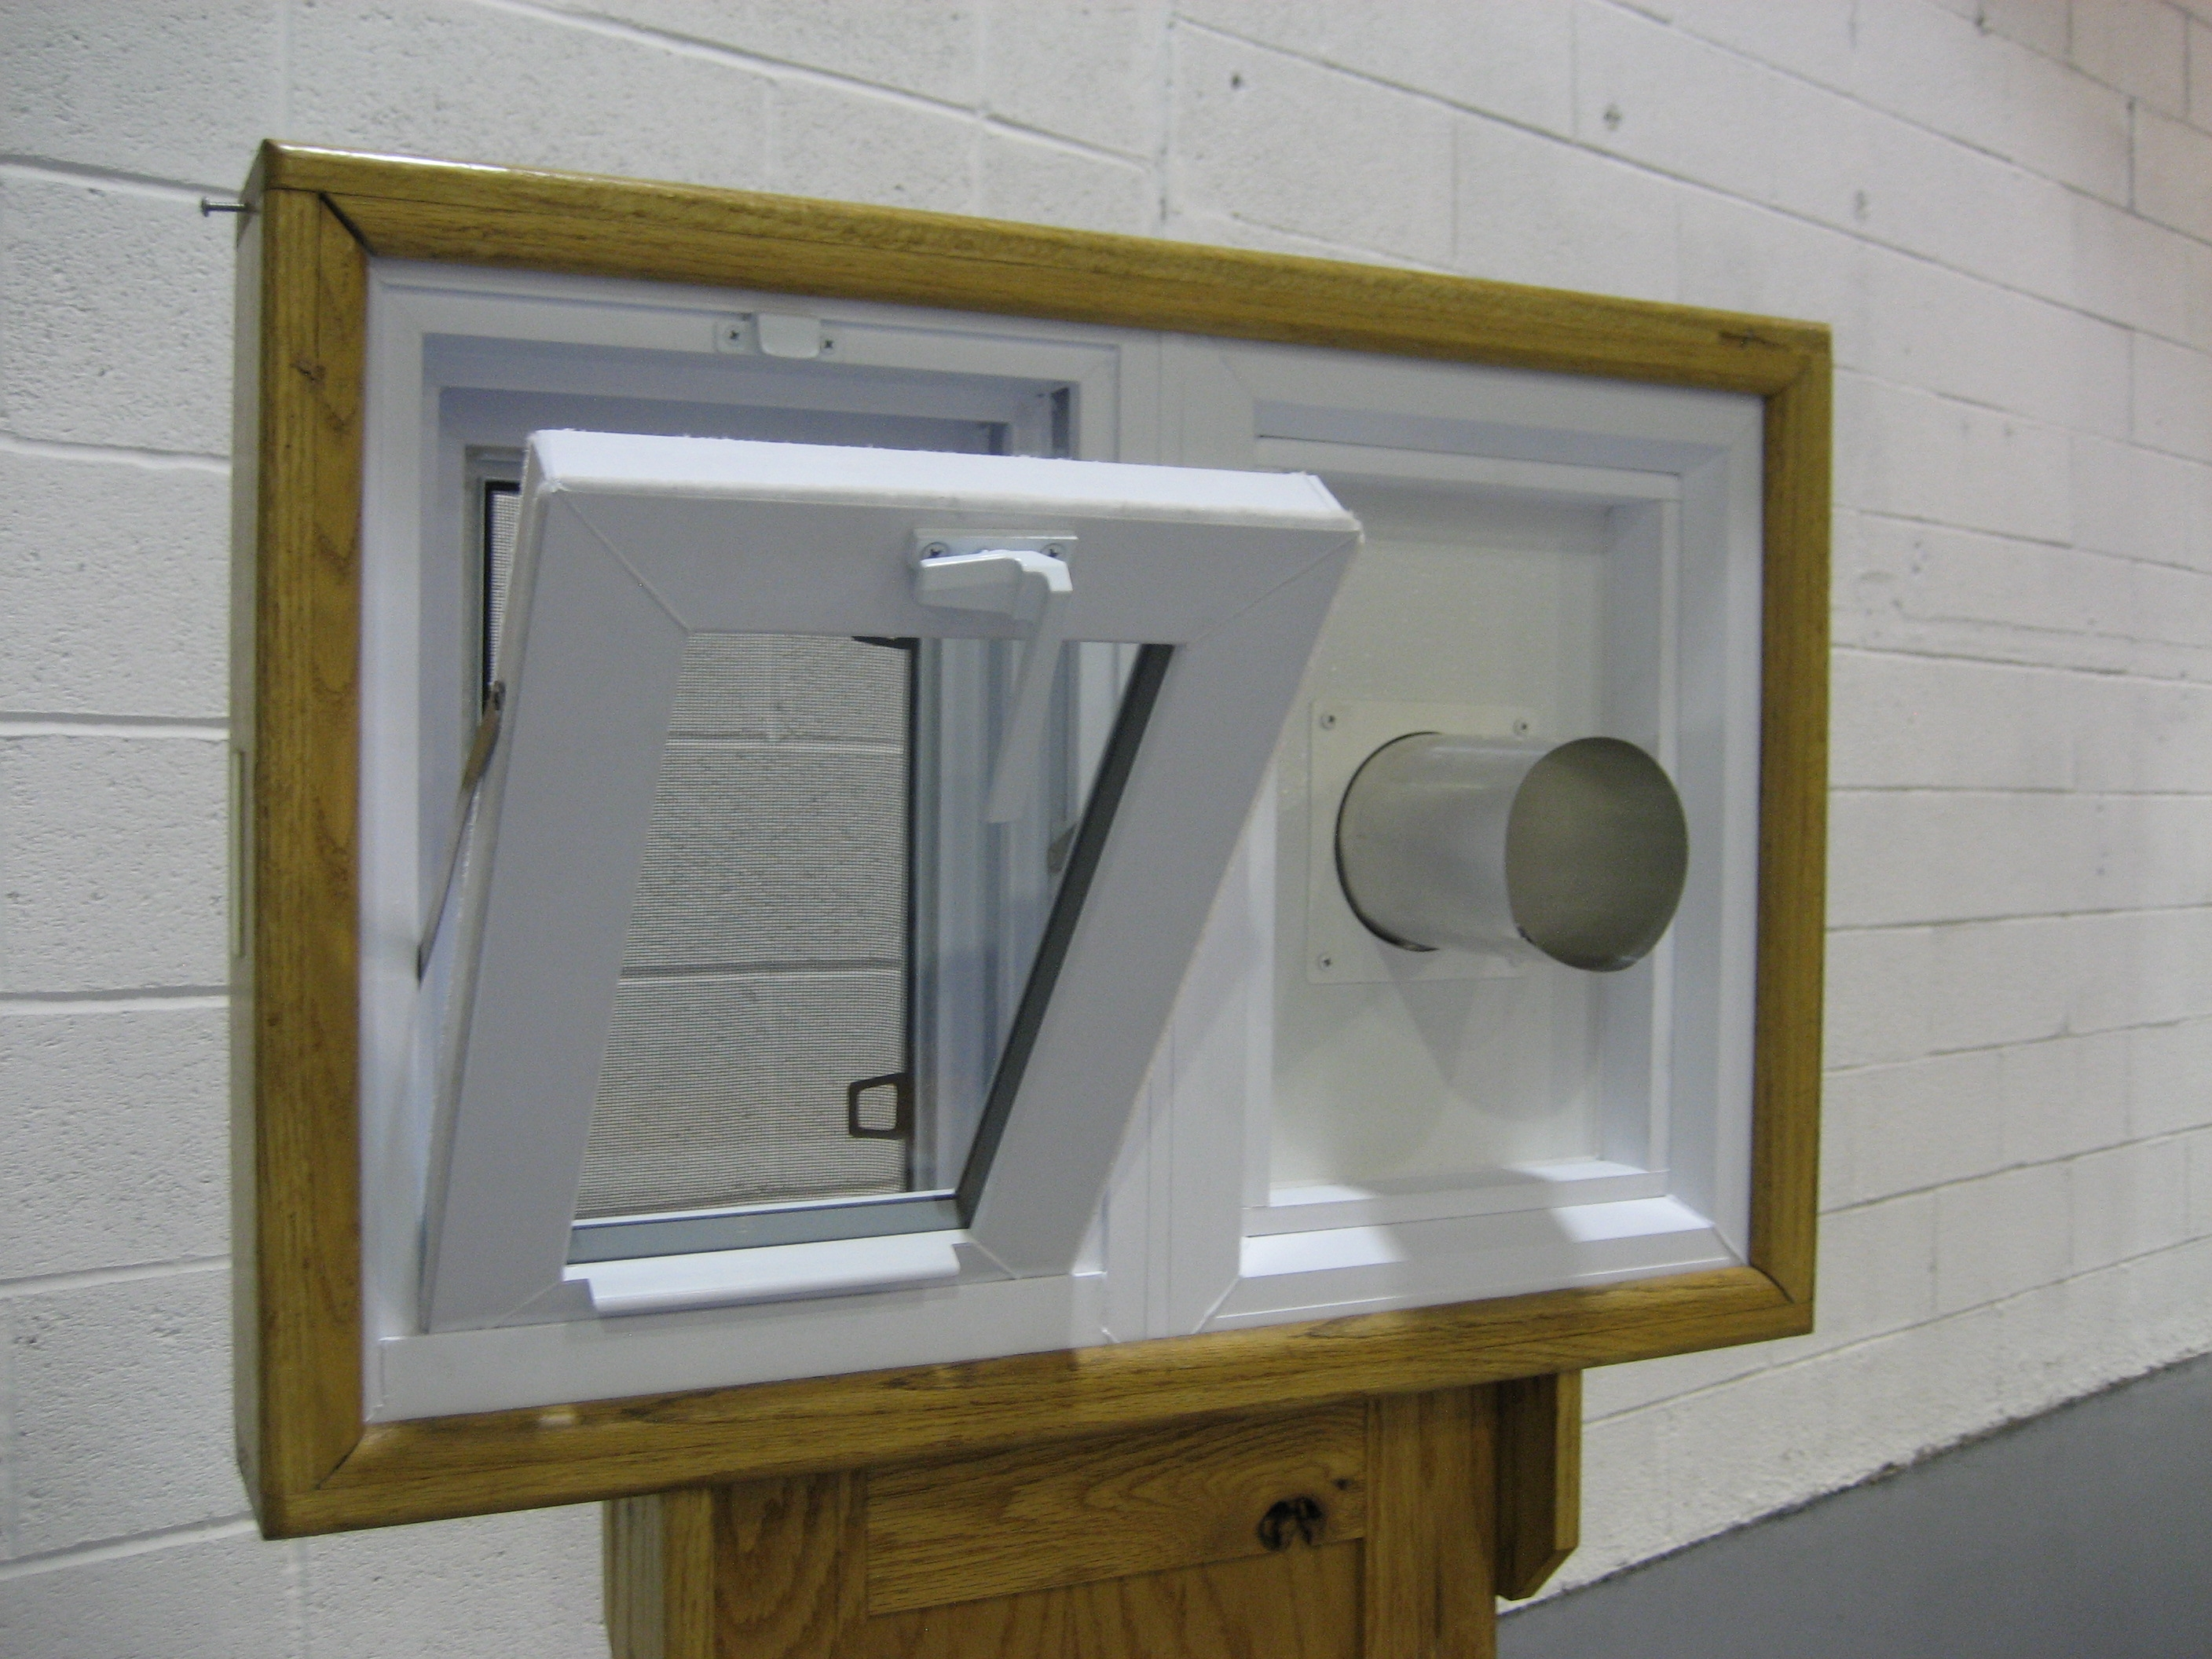 Basement Windows With Dryer Vents